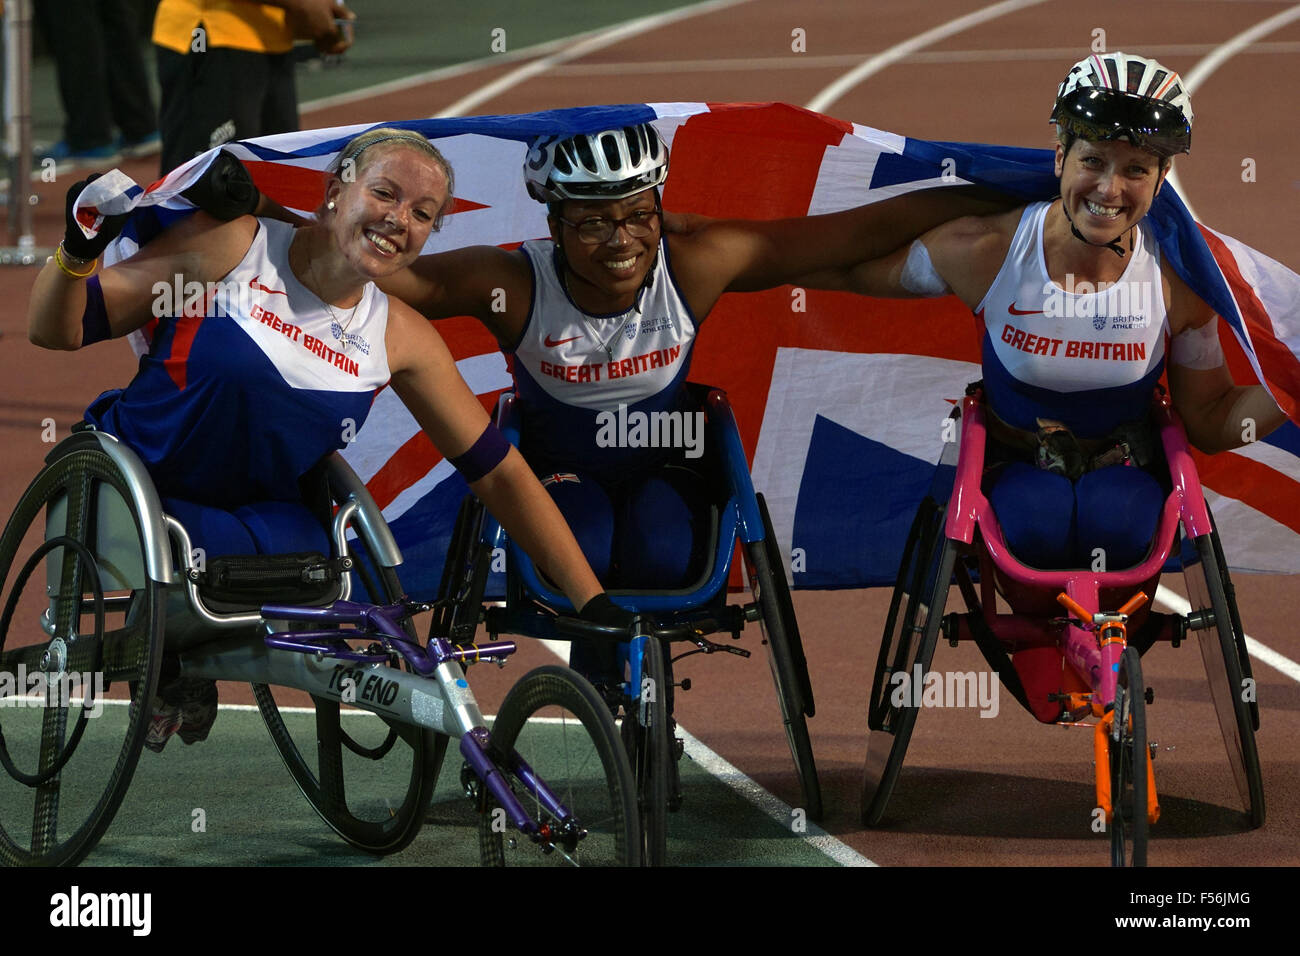 Doha, Qatar. 28th Oct, 2015. The Women's 800m T34 Final at the 2015 IPC Athletics World Championship taking - Stock Image